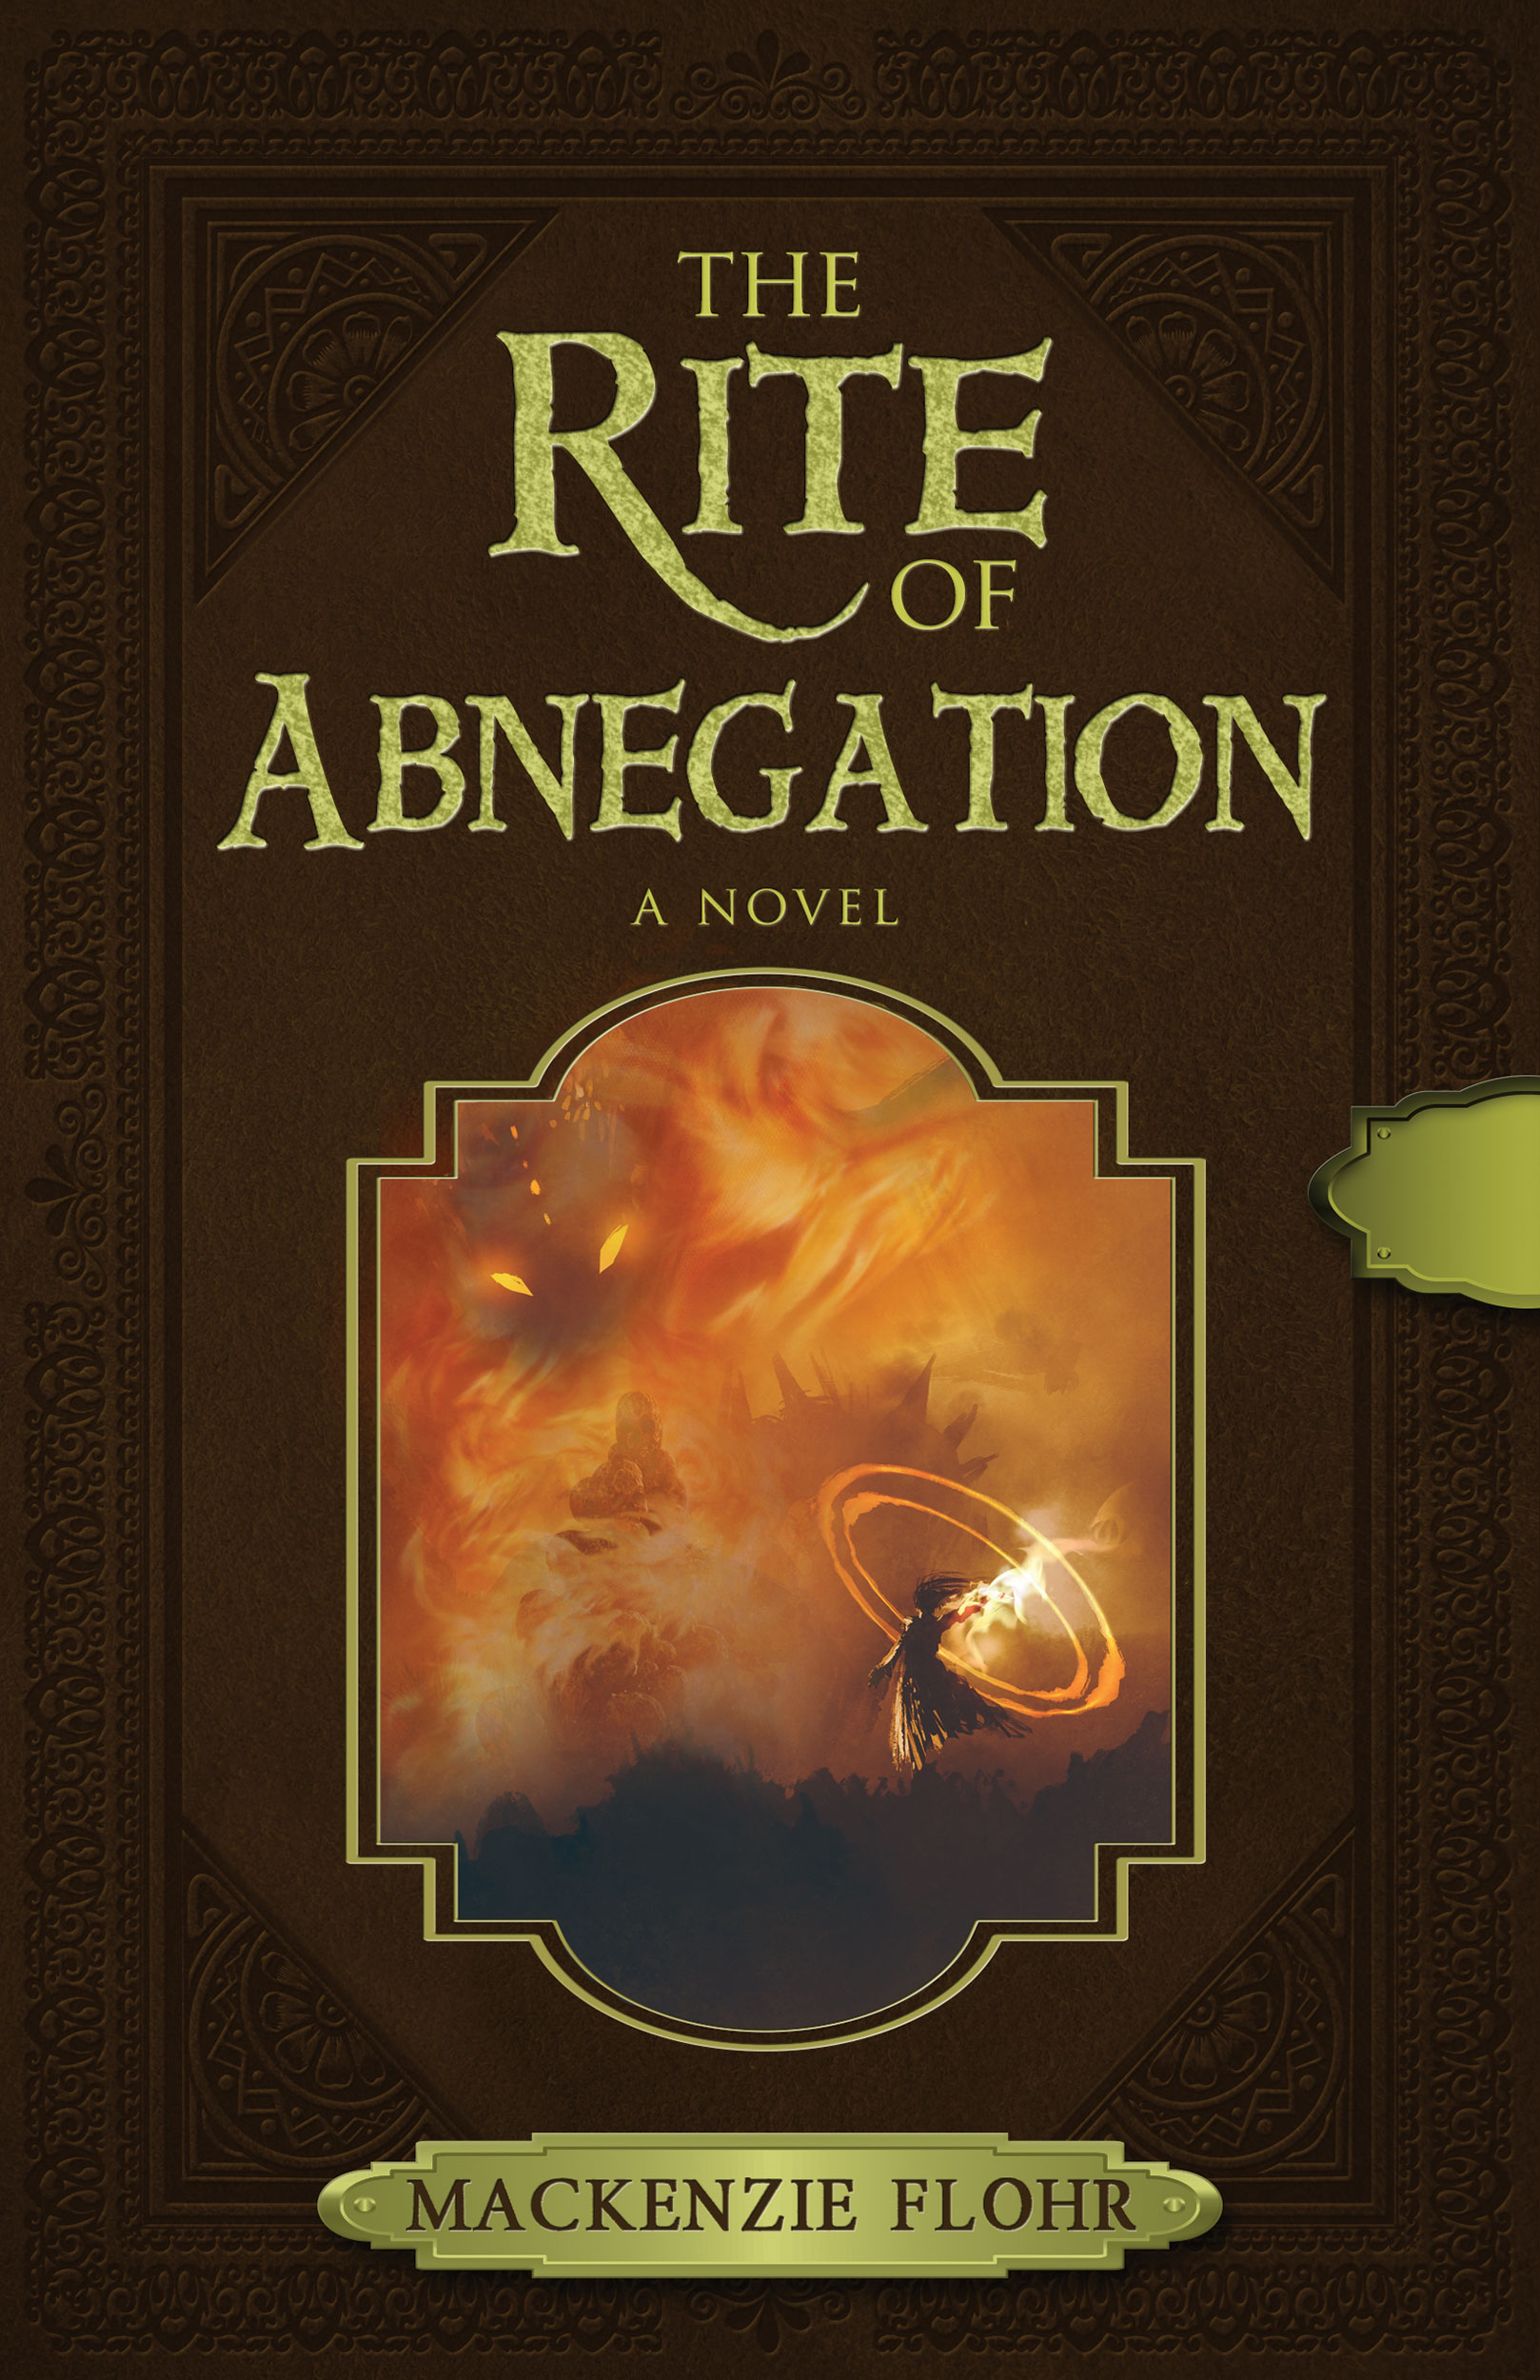 The Rite of Abnegation (The Rite of Wands, #2)